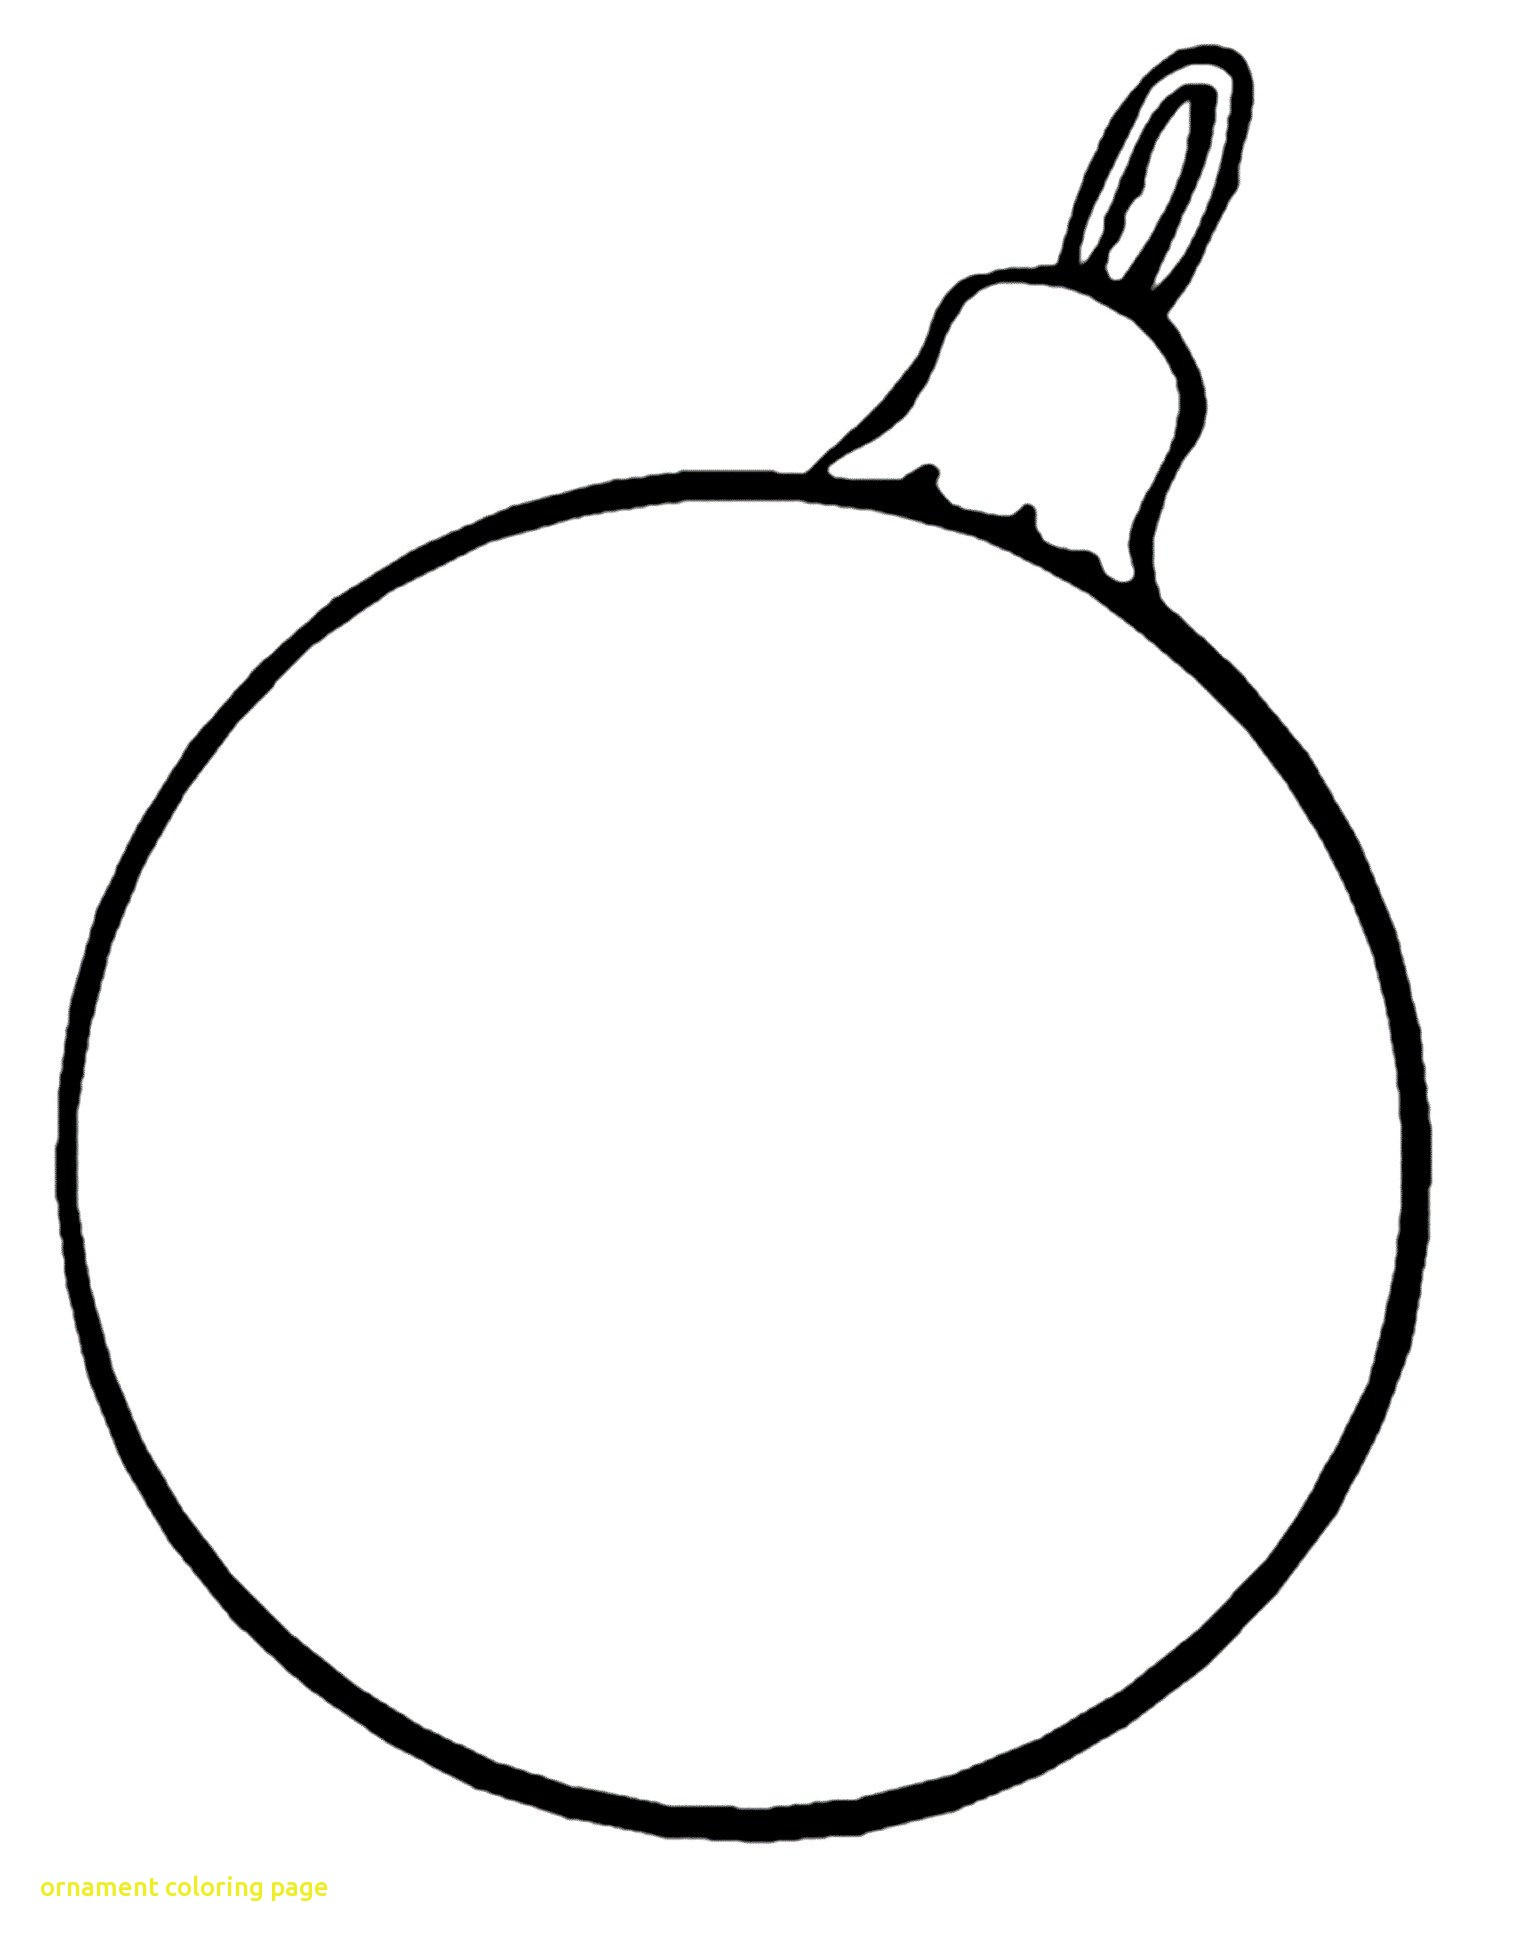 Christmas Coloring Pages Ornaments With Ornament Printable Decorations Bing Images Throughout